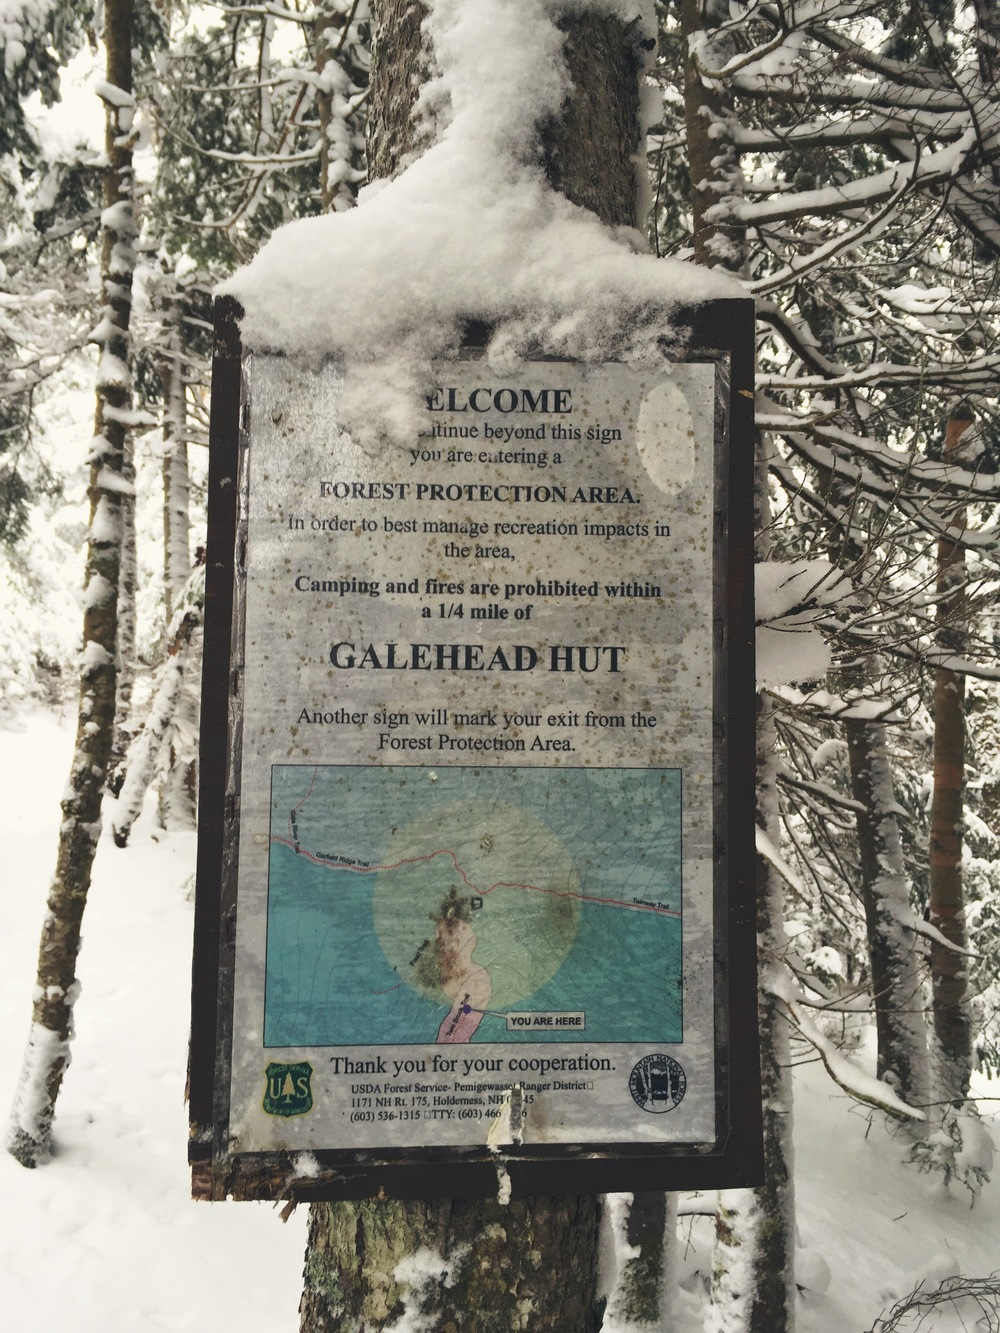 Our first sign after 2.7 miles of blindly hiking through the snow